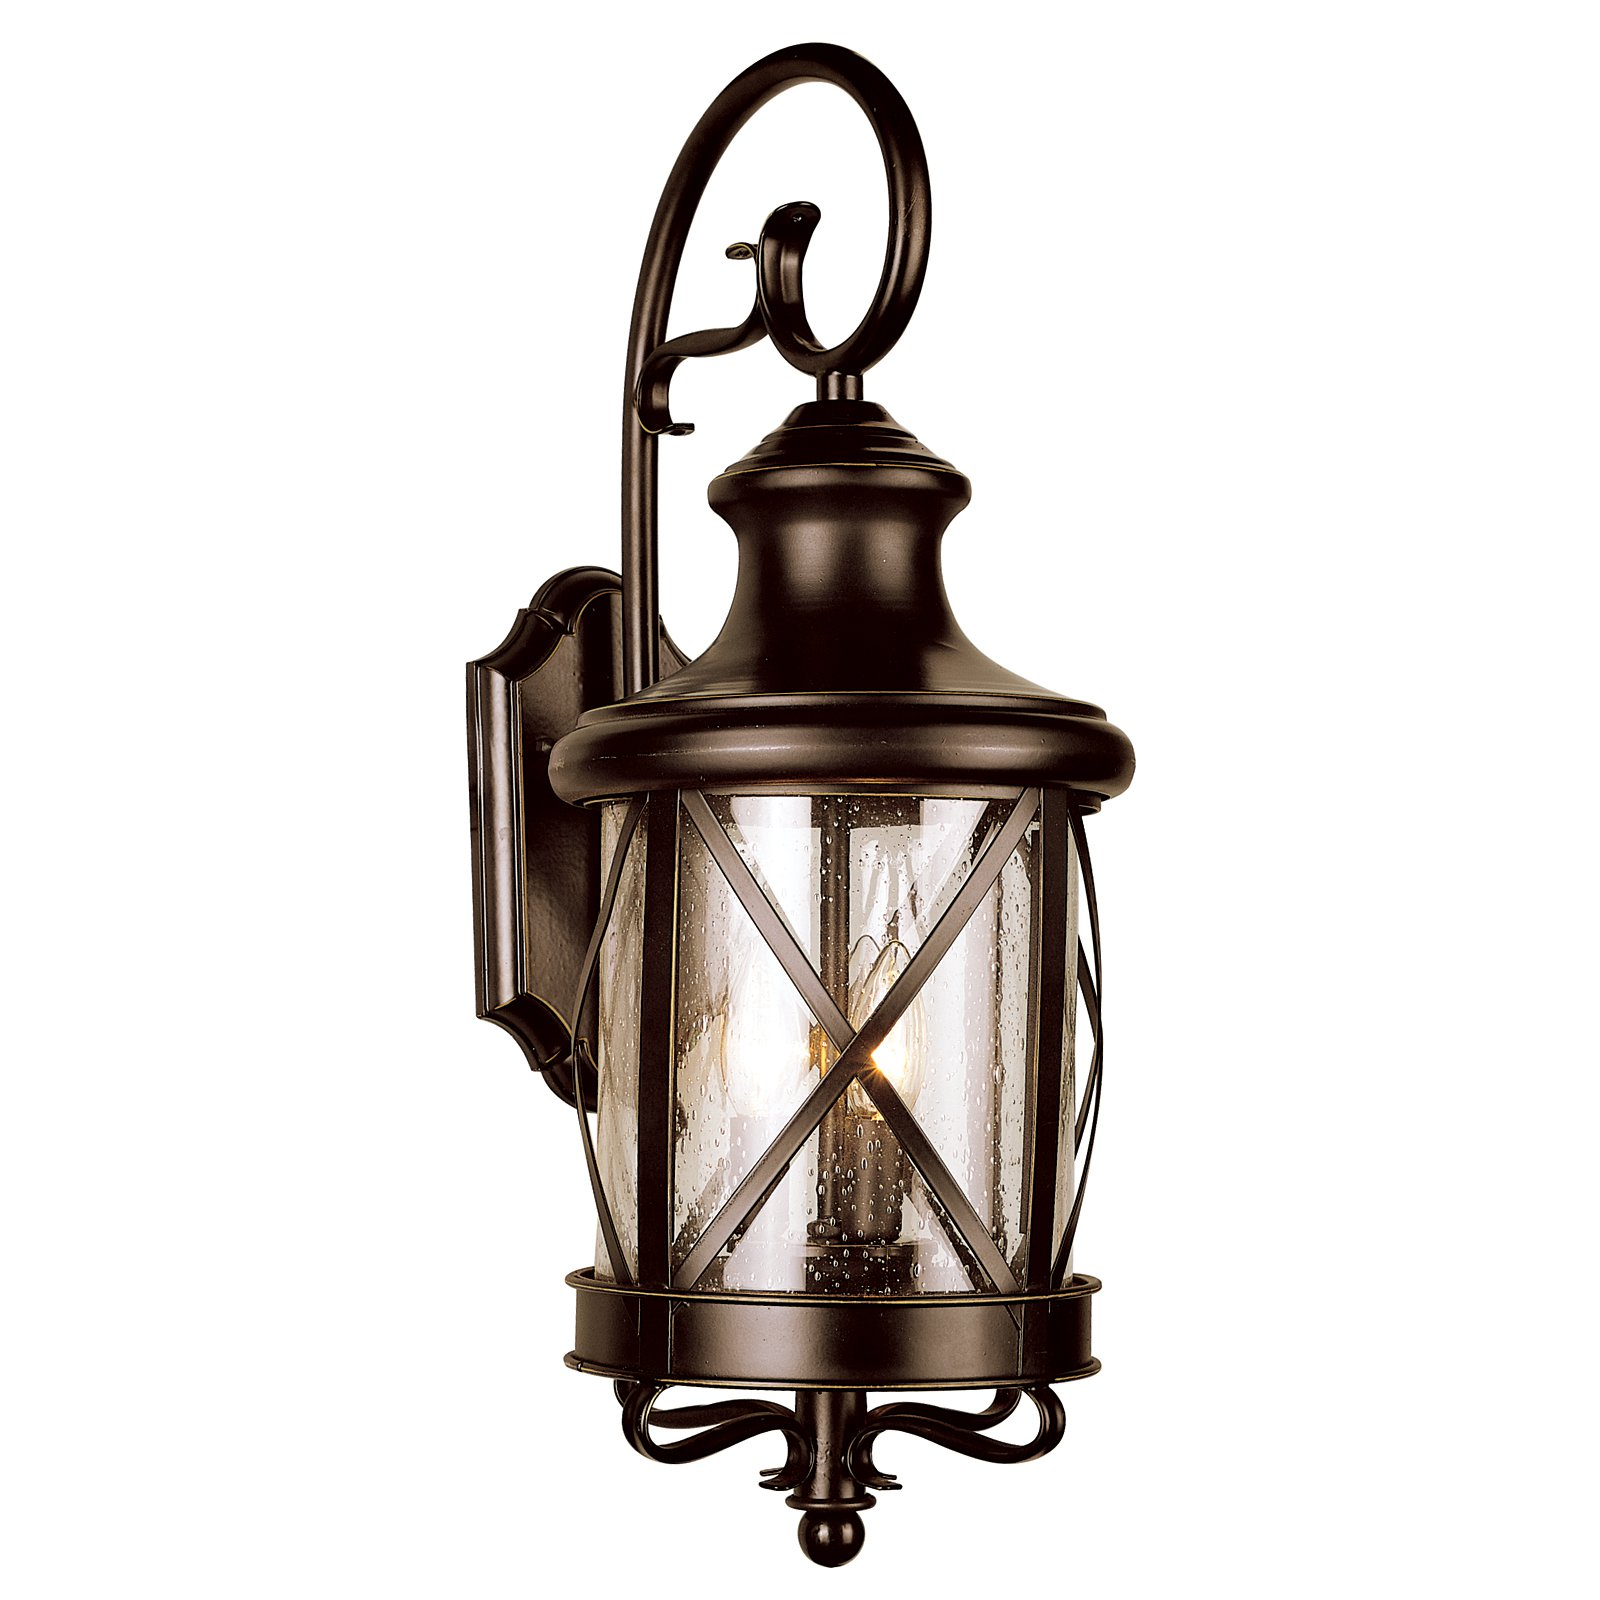 Bel Air Davis City Outdoor Wall Light - 19.5H in.